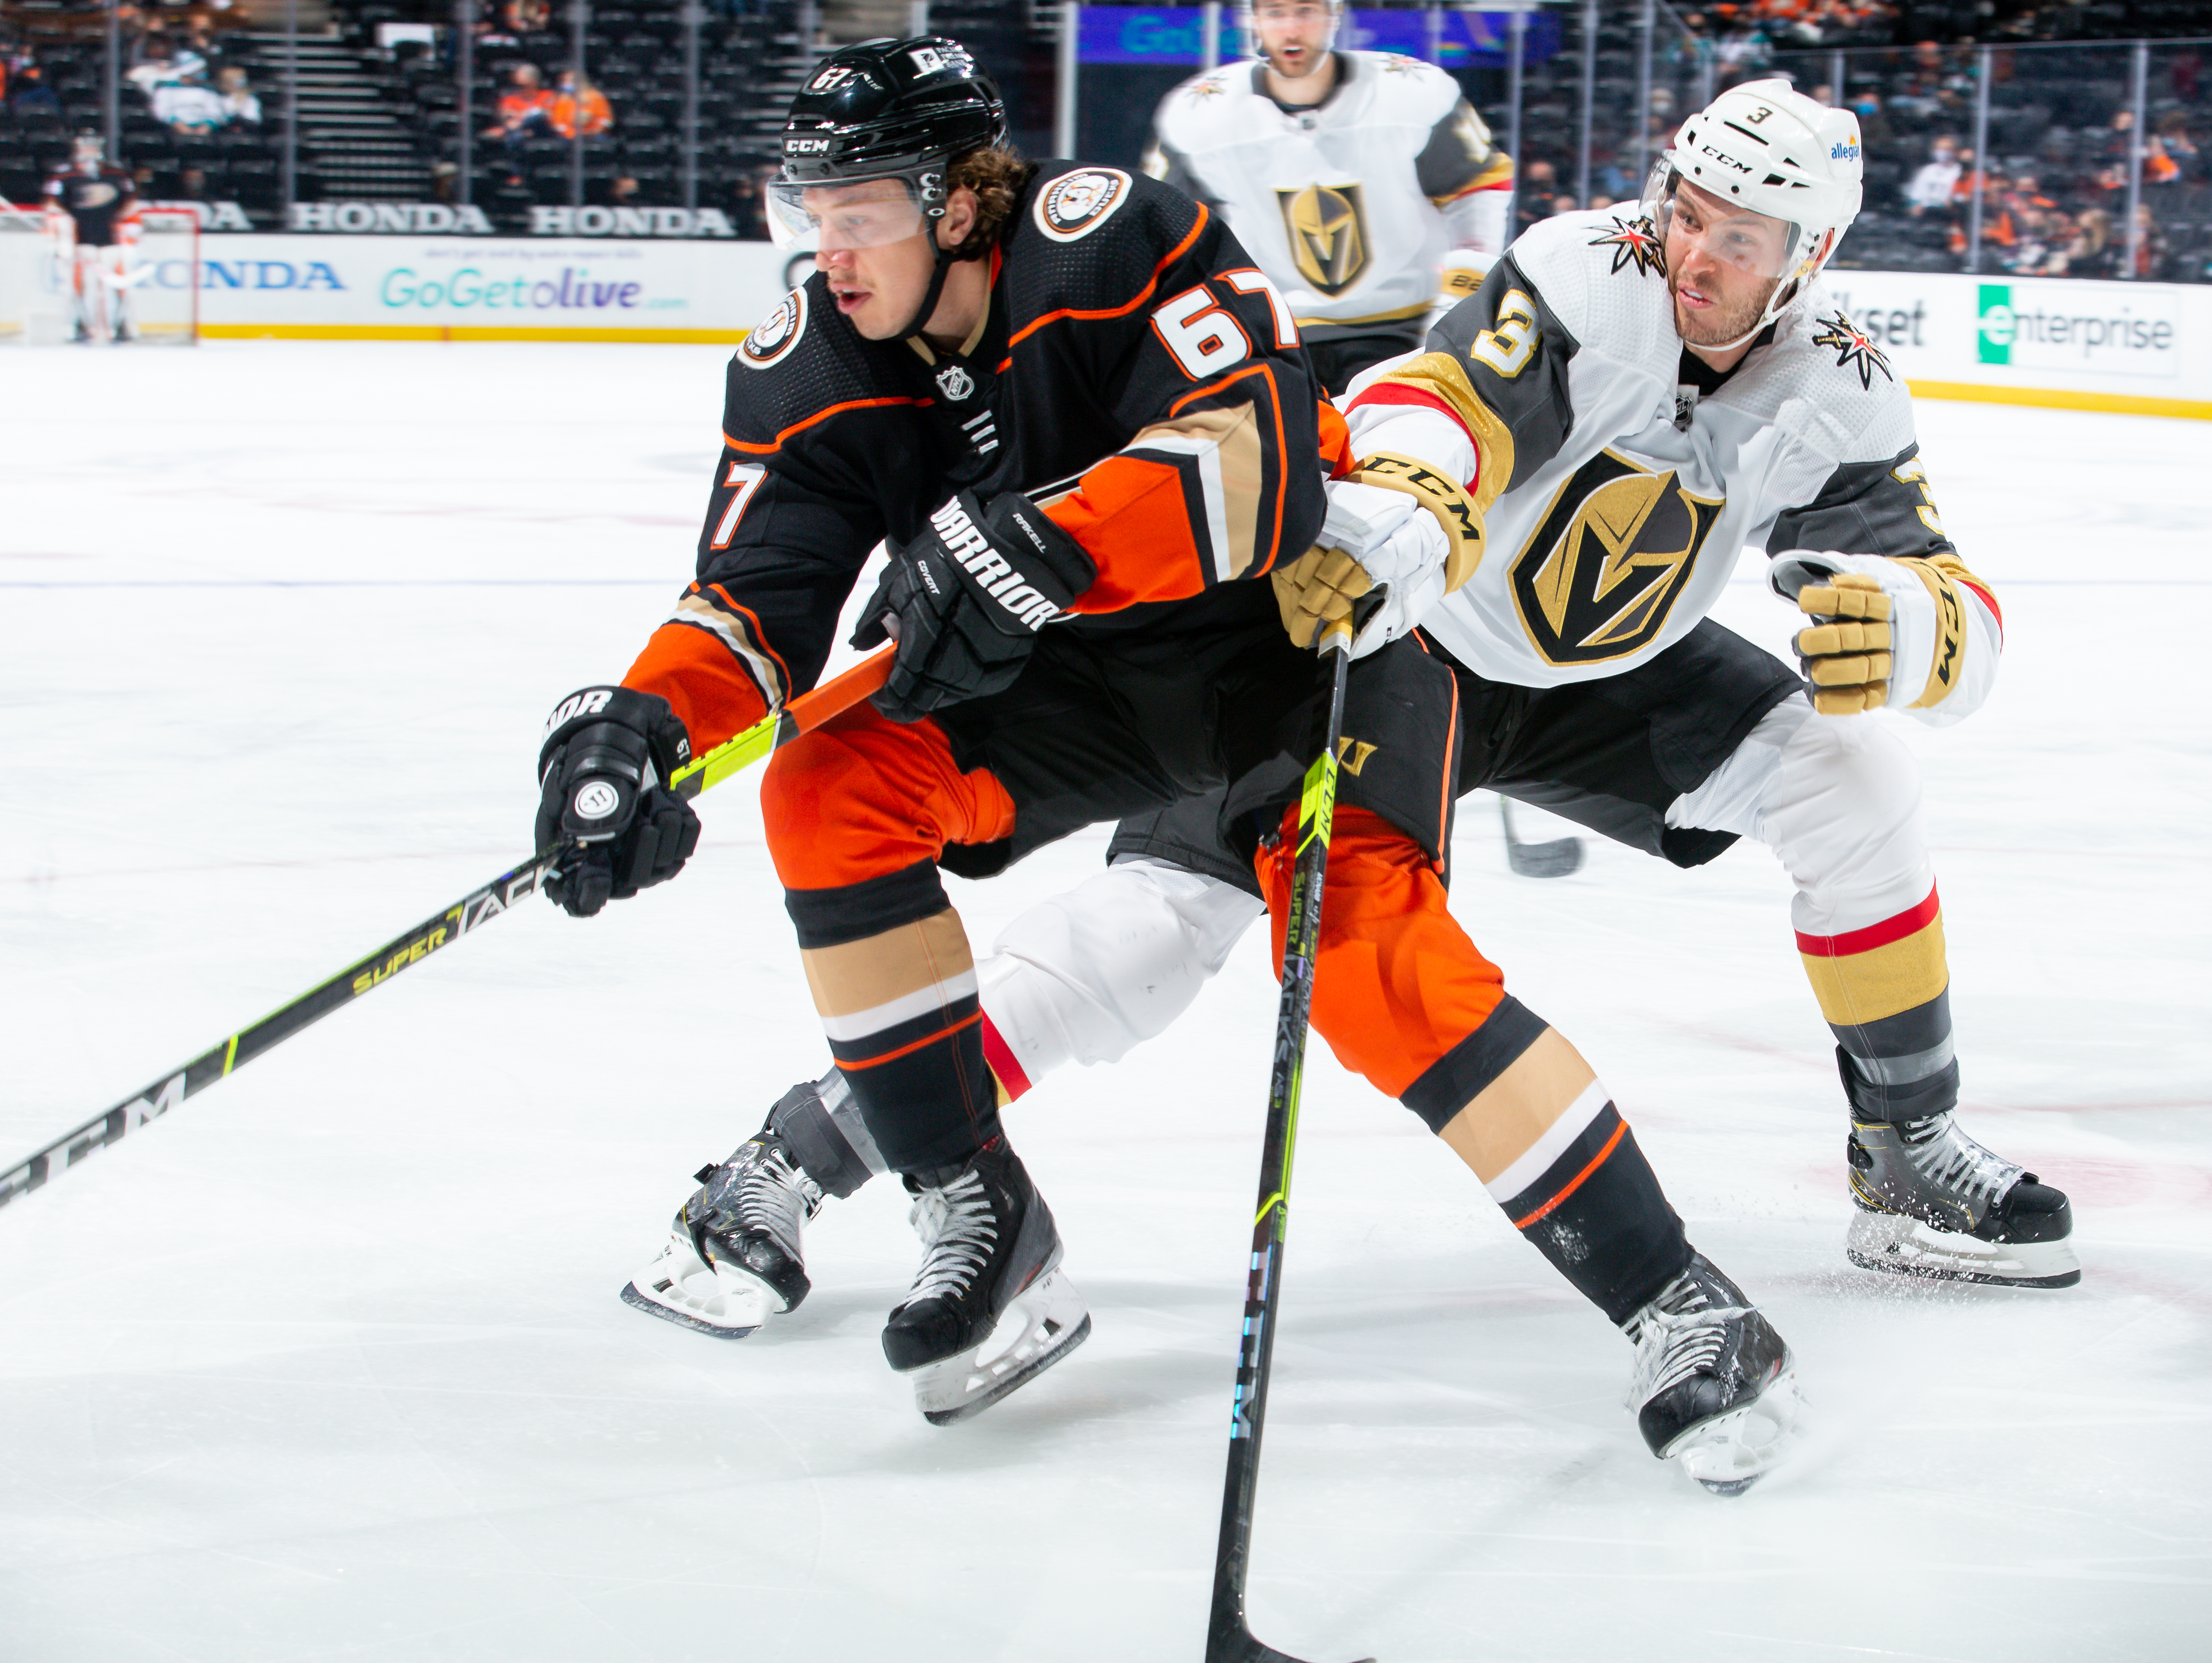 Rickard Rakell #67 of the Anaheim Ducks and Brayden McNabb #3 of the Vegas Golden Knights battle for the puck during the second period of the game at Honda Center on April 16, 2021 in Anaheim, California.